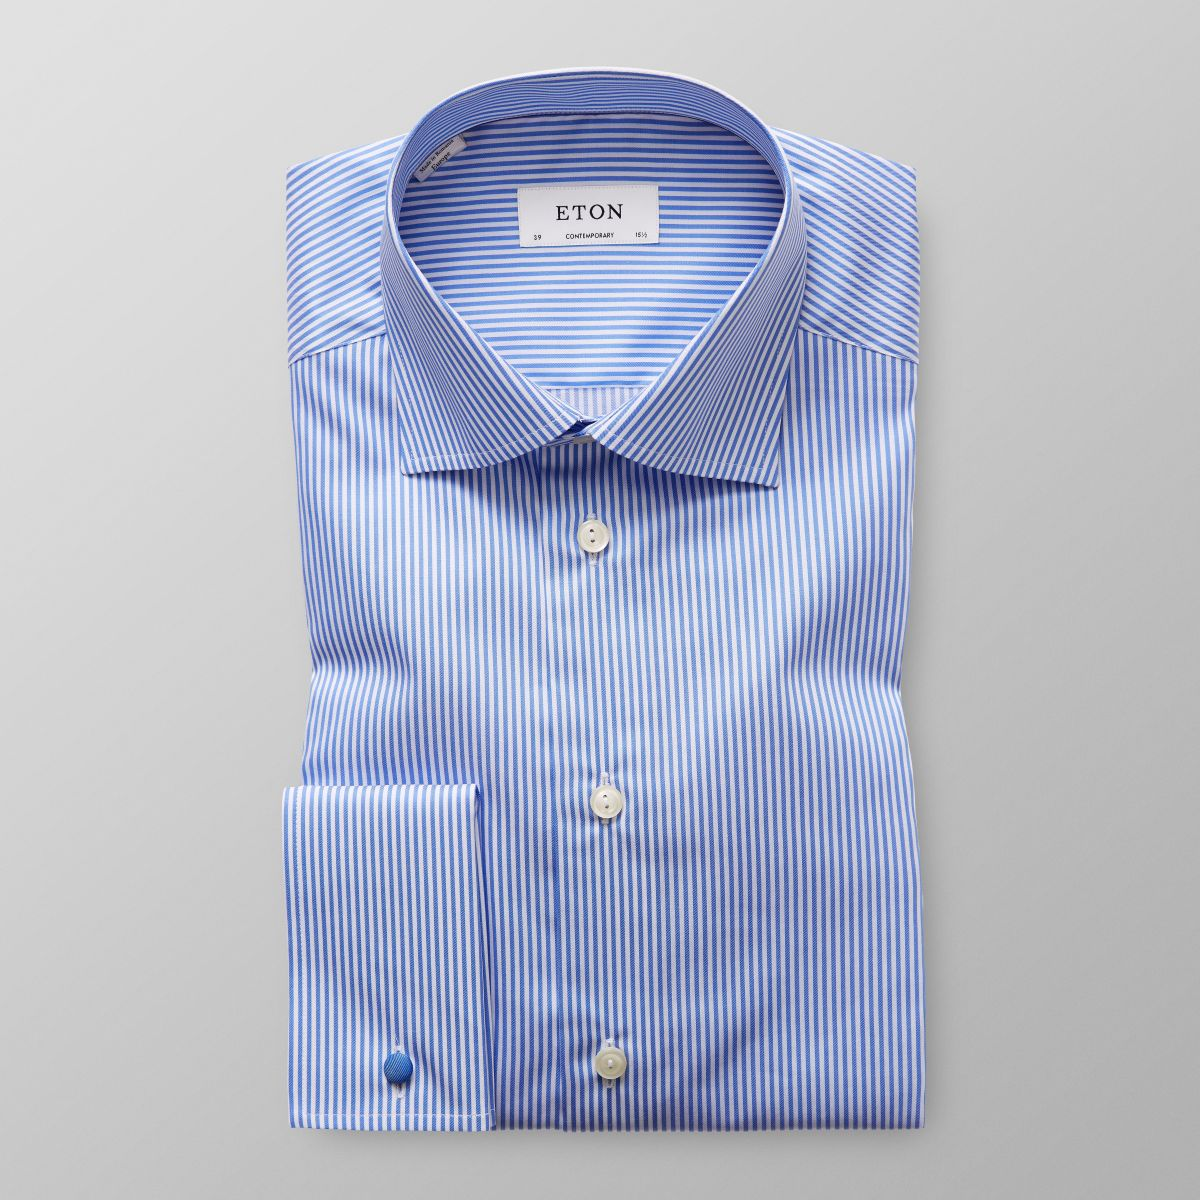 blue striped french cuff shirt contemporary eton shirts us. Black Bedroom Furniture Sets. Home Design Ideas